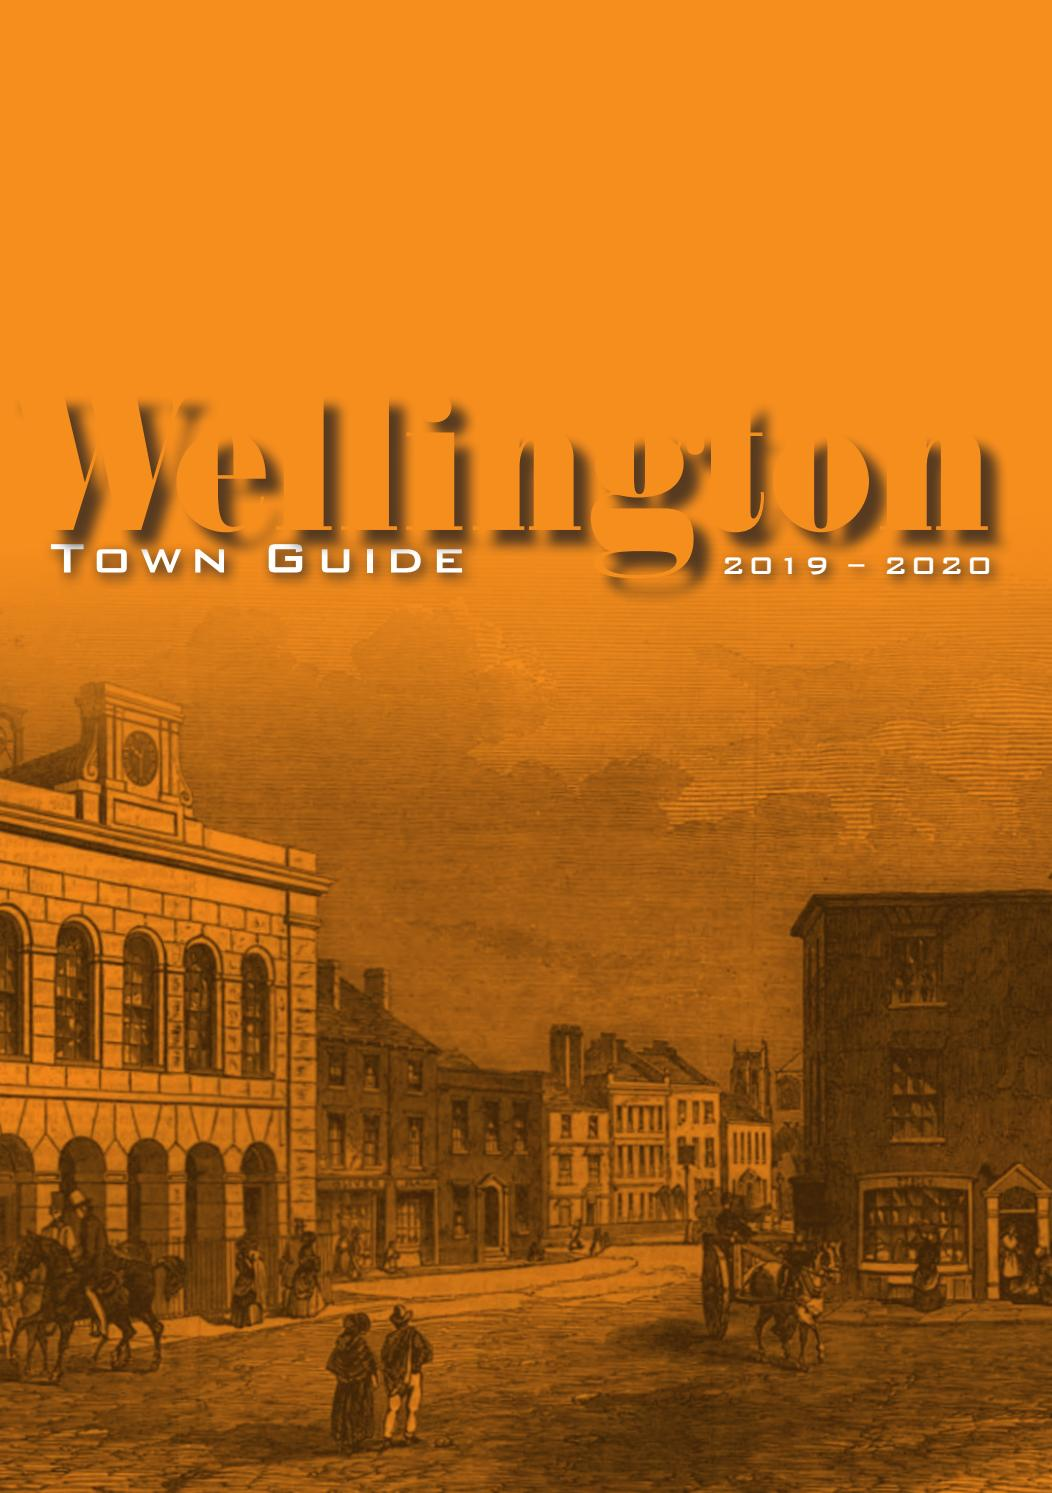 Wellington Town Guide 2019 by The Edge Directory - issuu